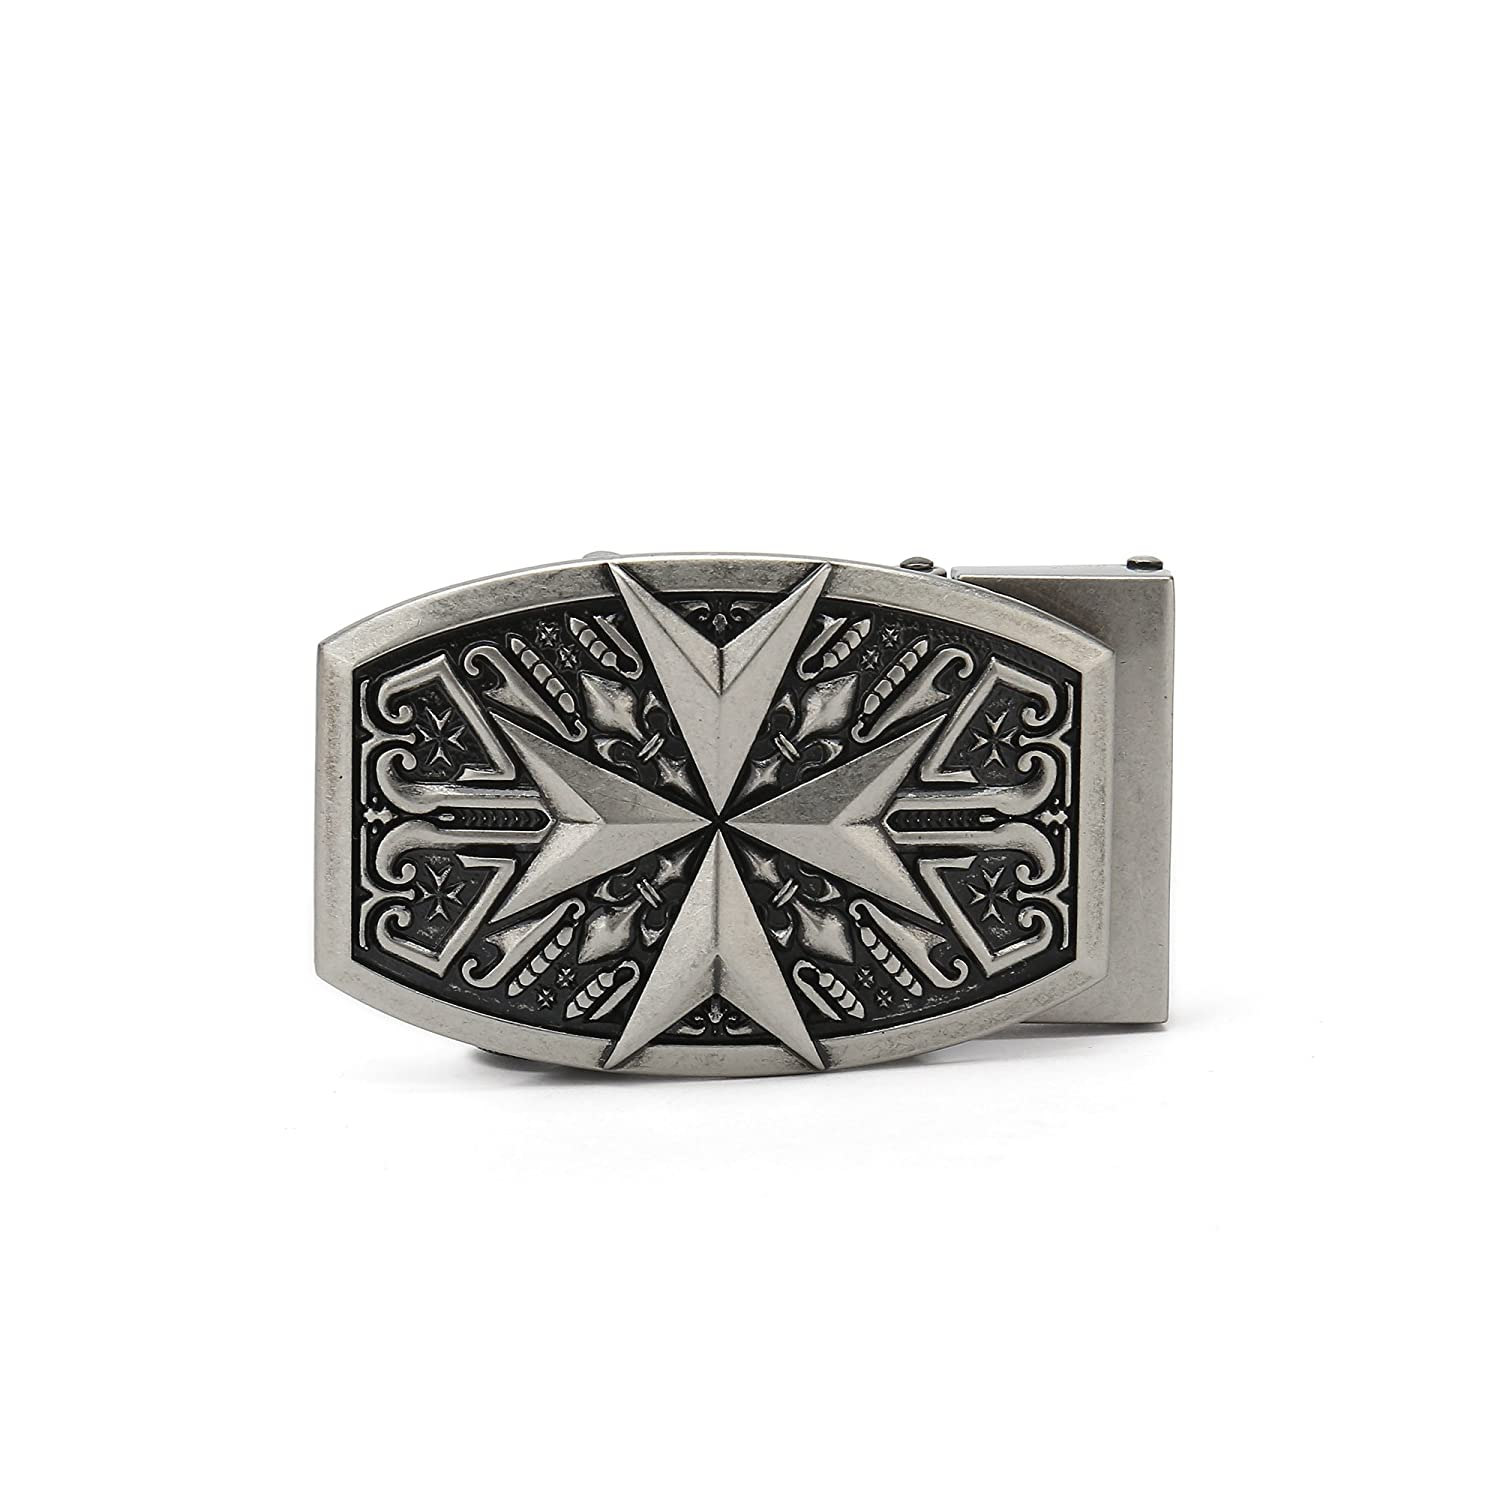 Gurscour Mens Western Arrow Ratchet Automatical Belt Buckle Retro Silver